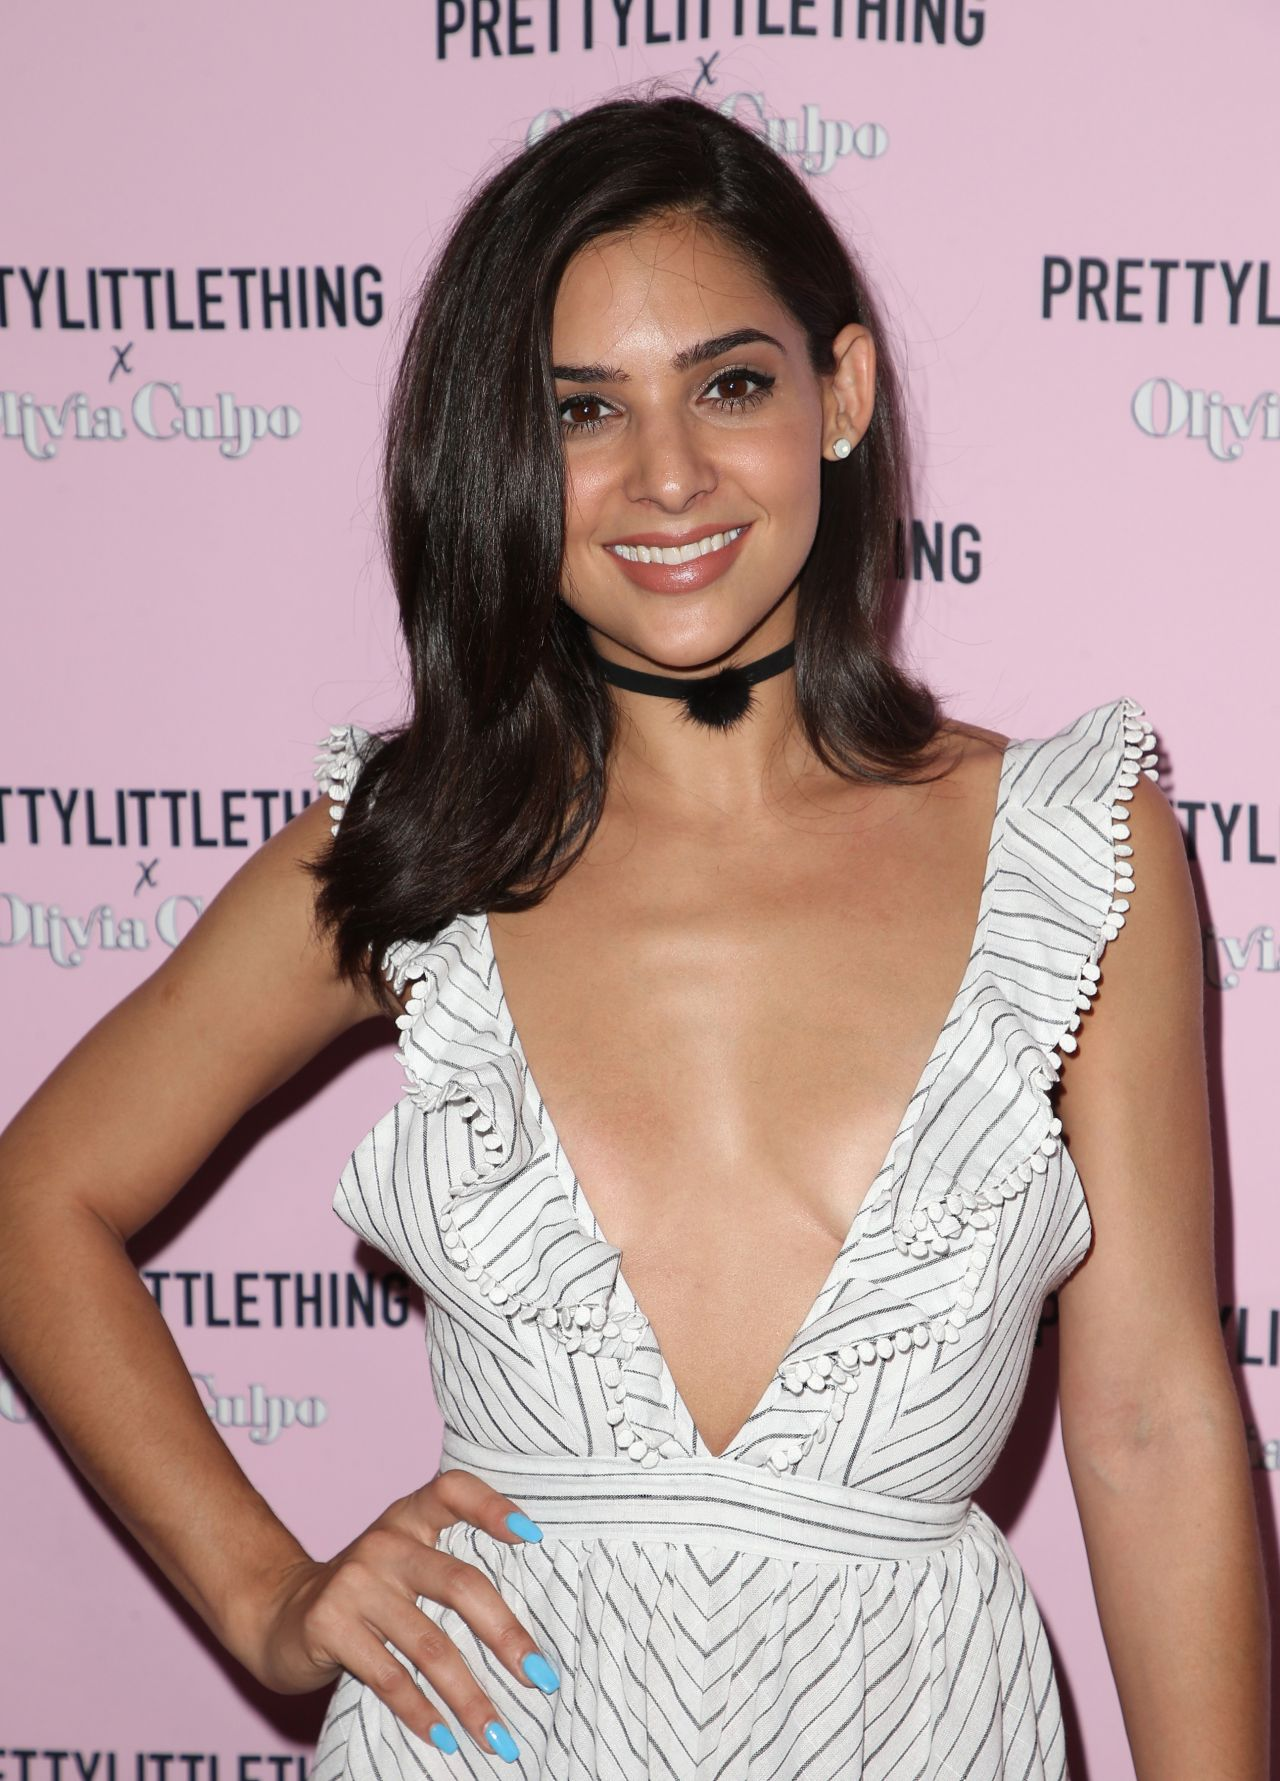 Leaked Camila Banus nudes (24 foto and video), Ass, Paparazzi, Instagram, legs 2020